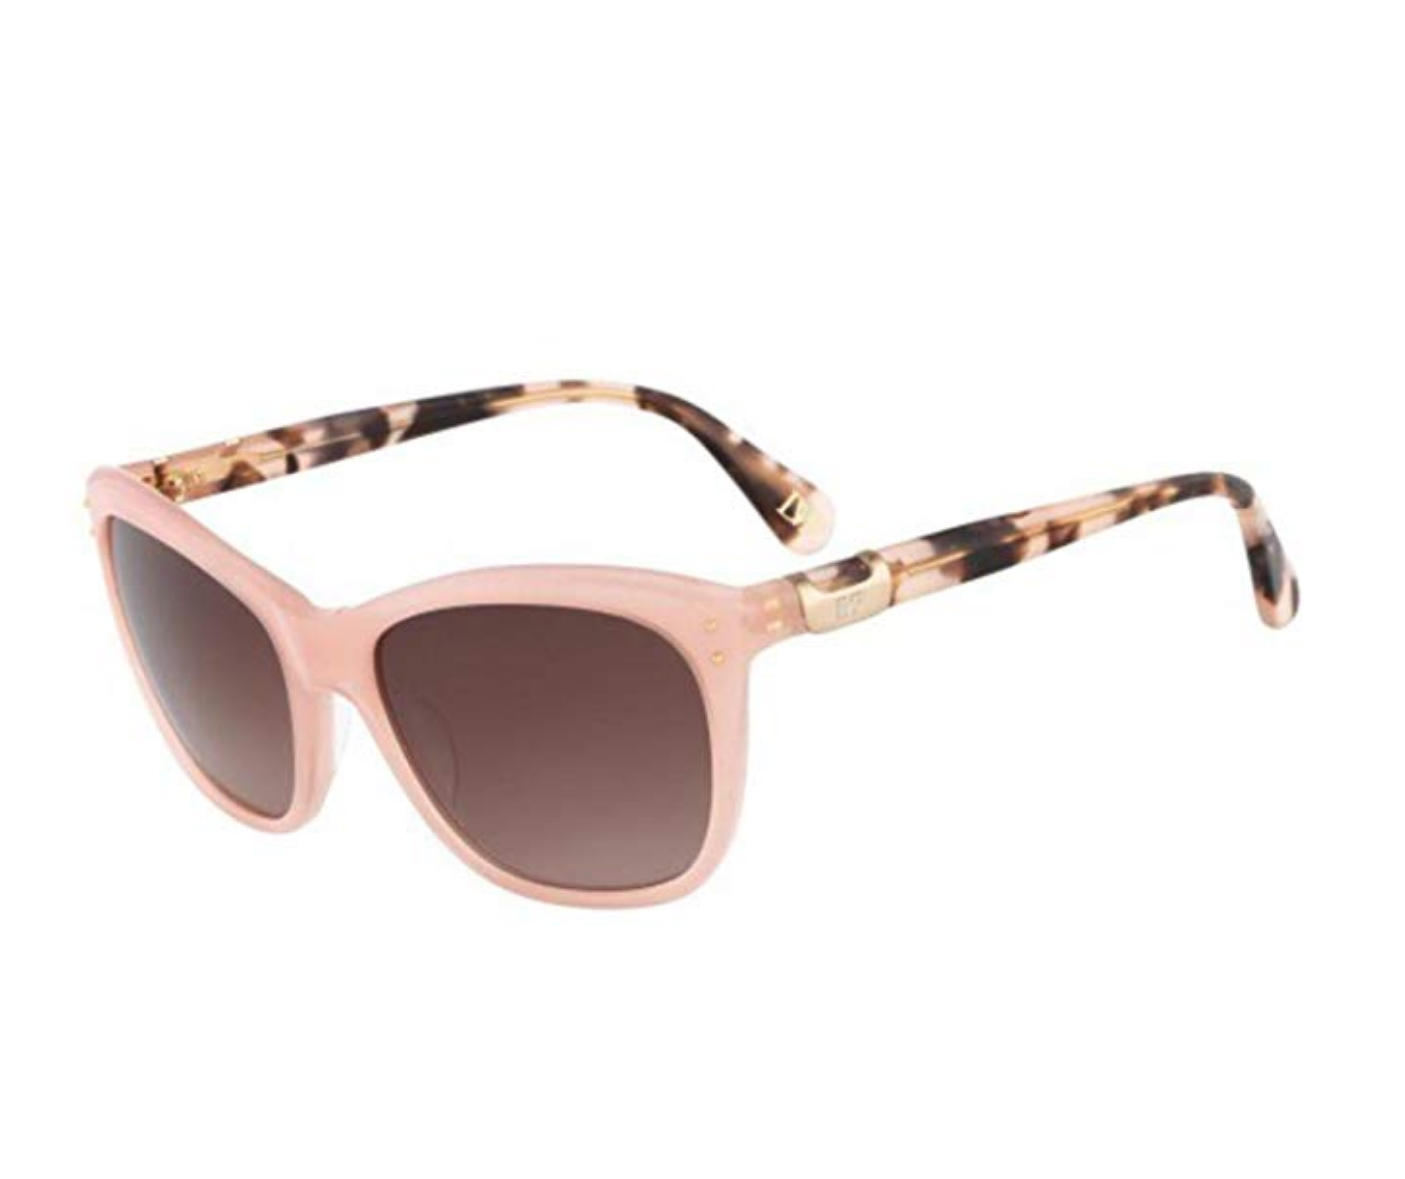 Sunglasses - These pretty little blush sunglasses are the perfect addition to your honeymoon packing list.